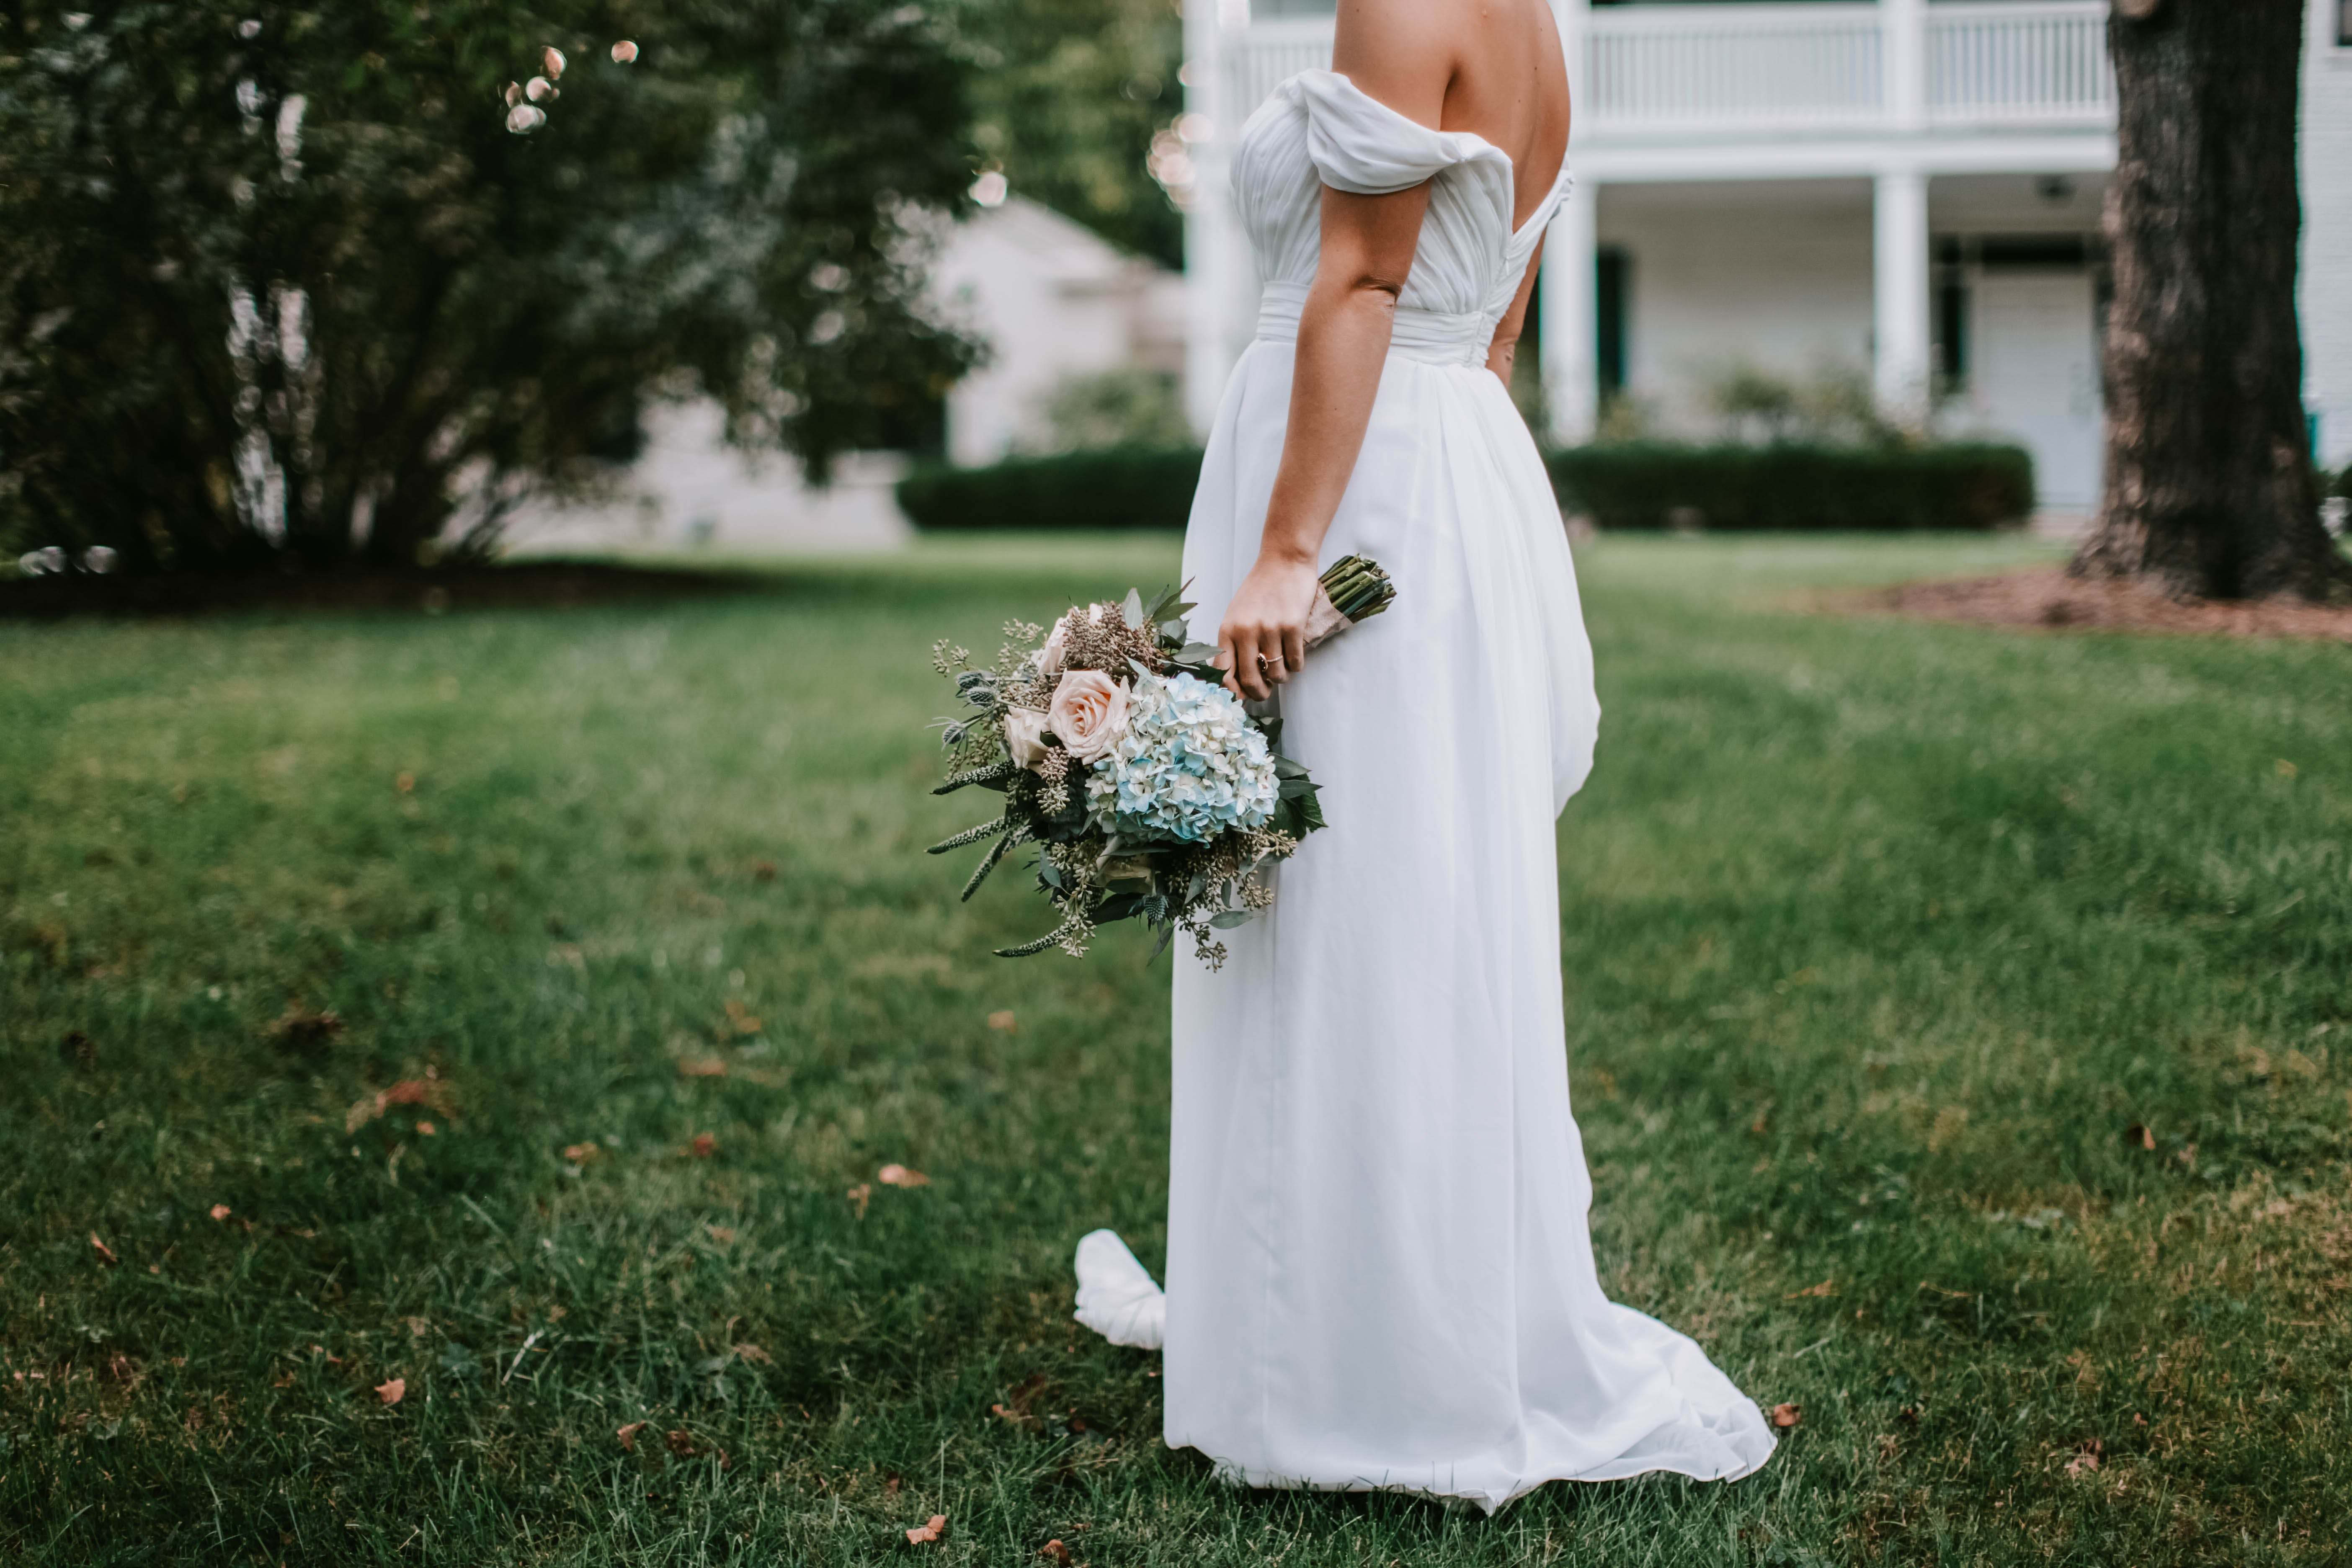 Woman Standing on Grass While Holding Flower Bouquet